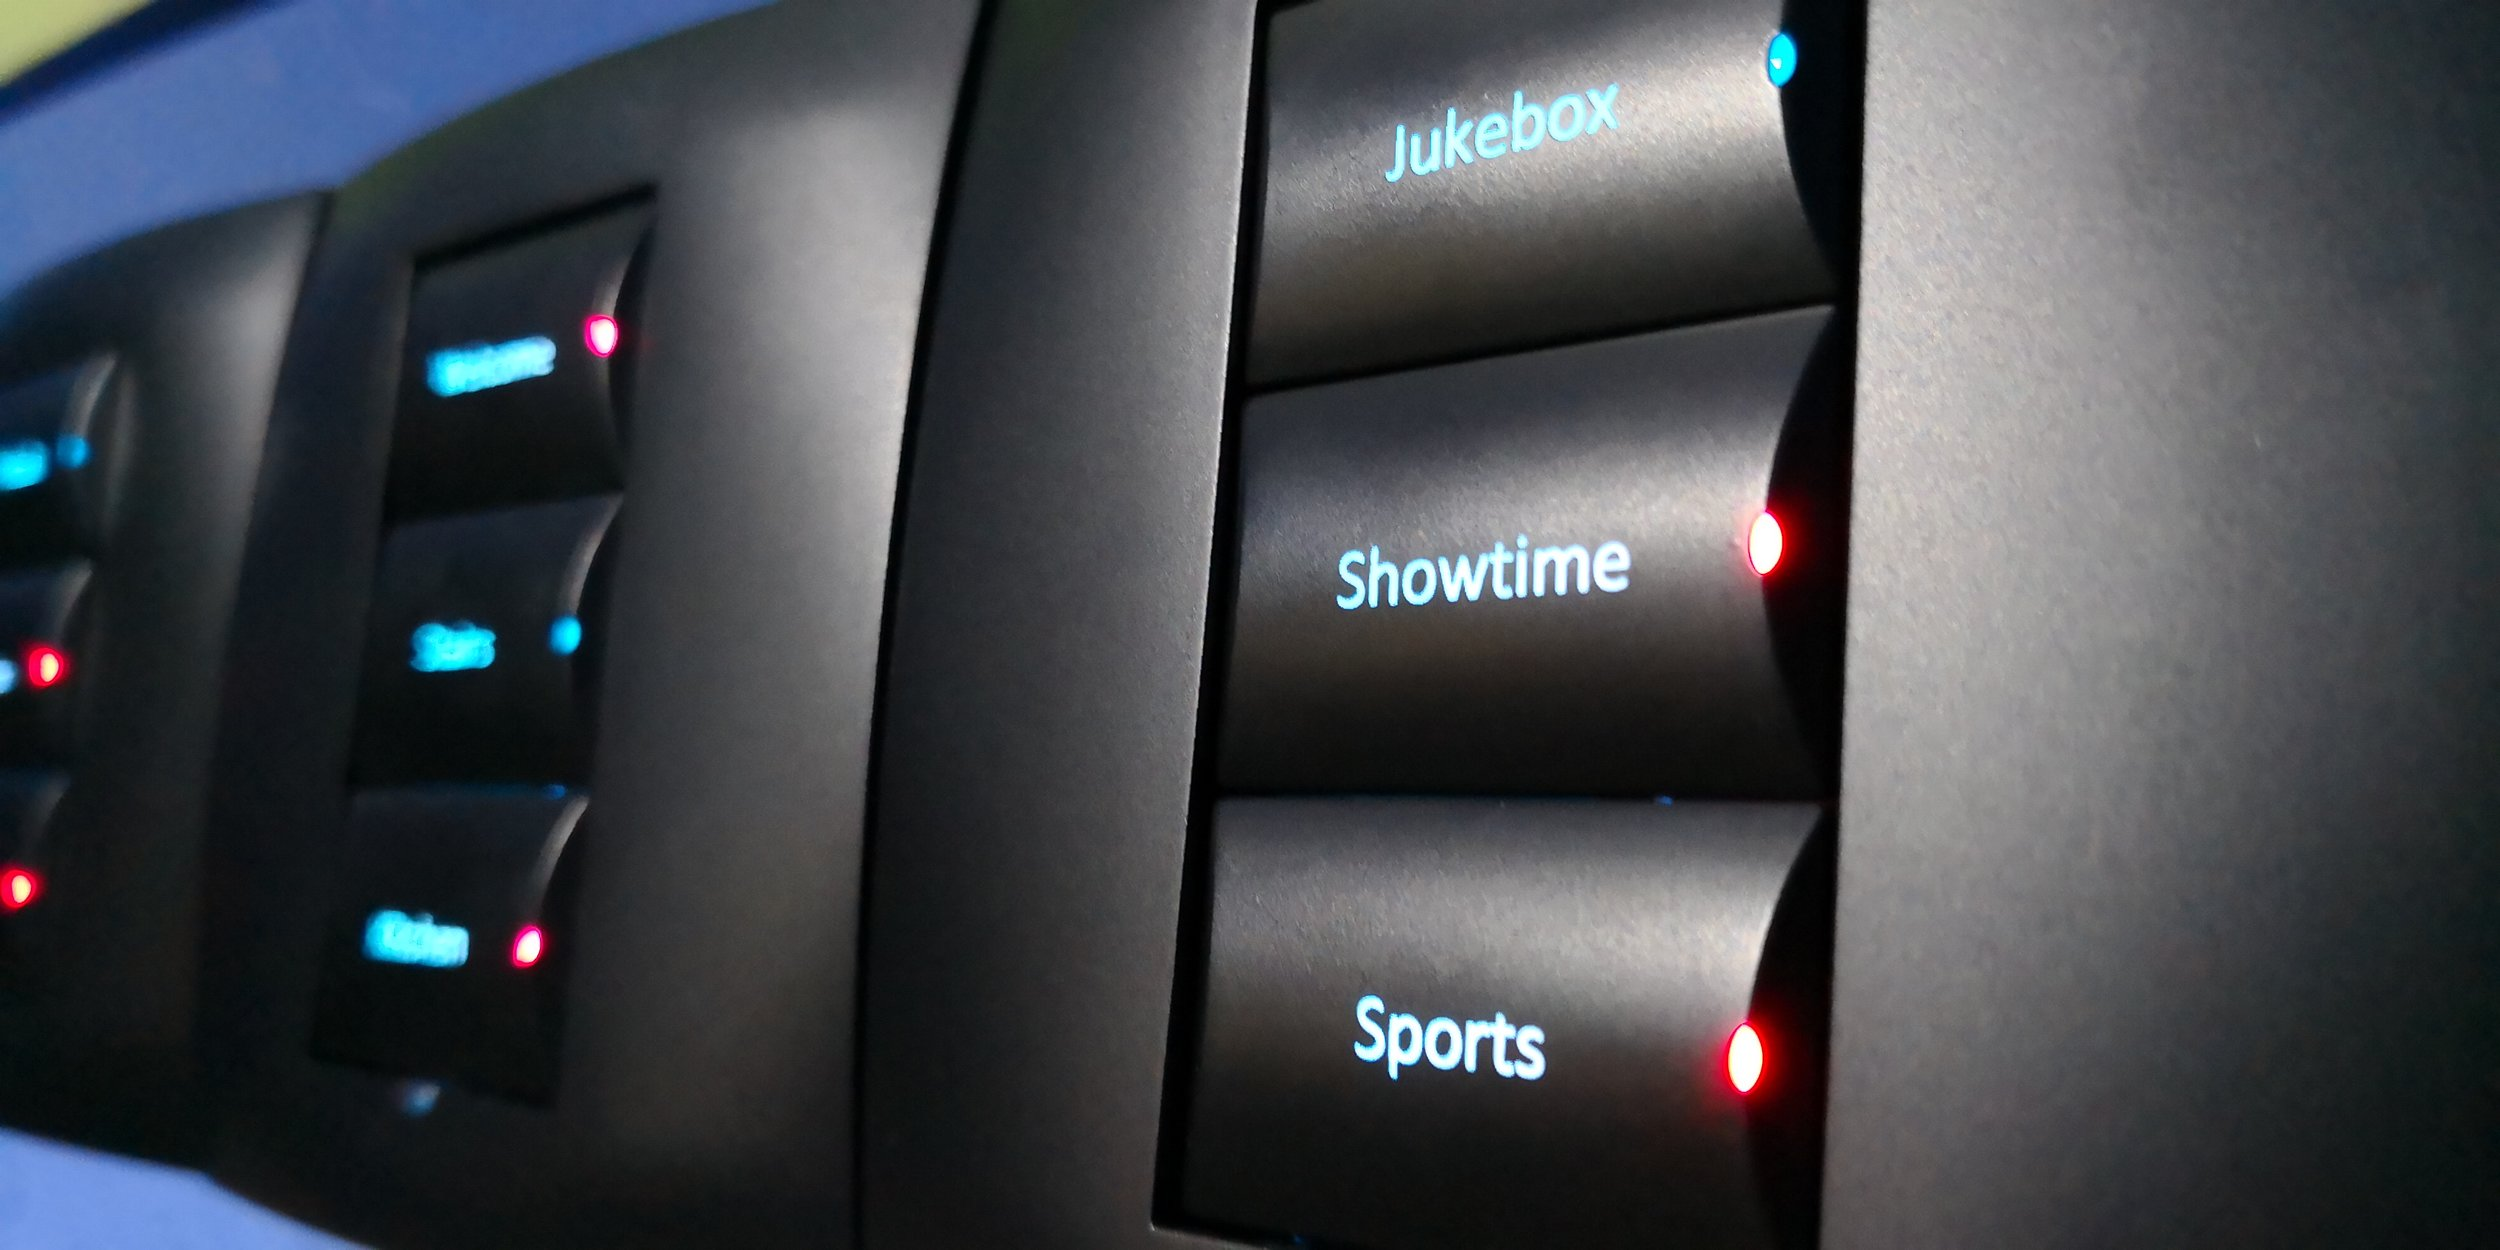 Control4 Automation allows us to automate not only the lights and AV, but the various pinball machines, record players and other memorabilia that require power.